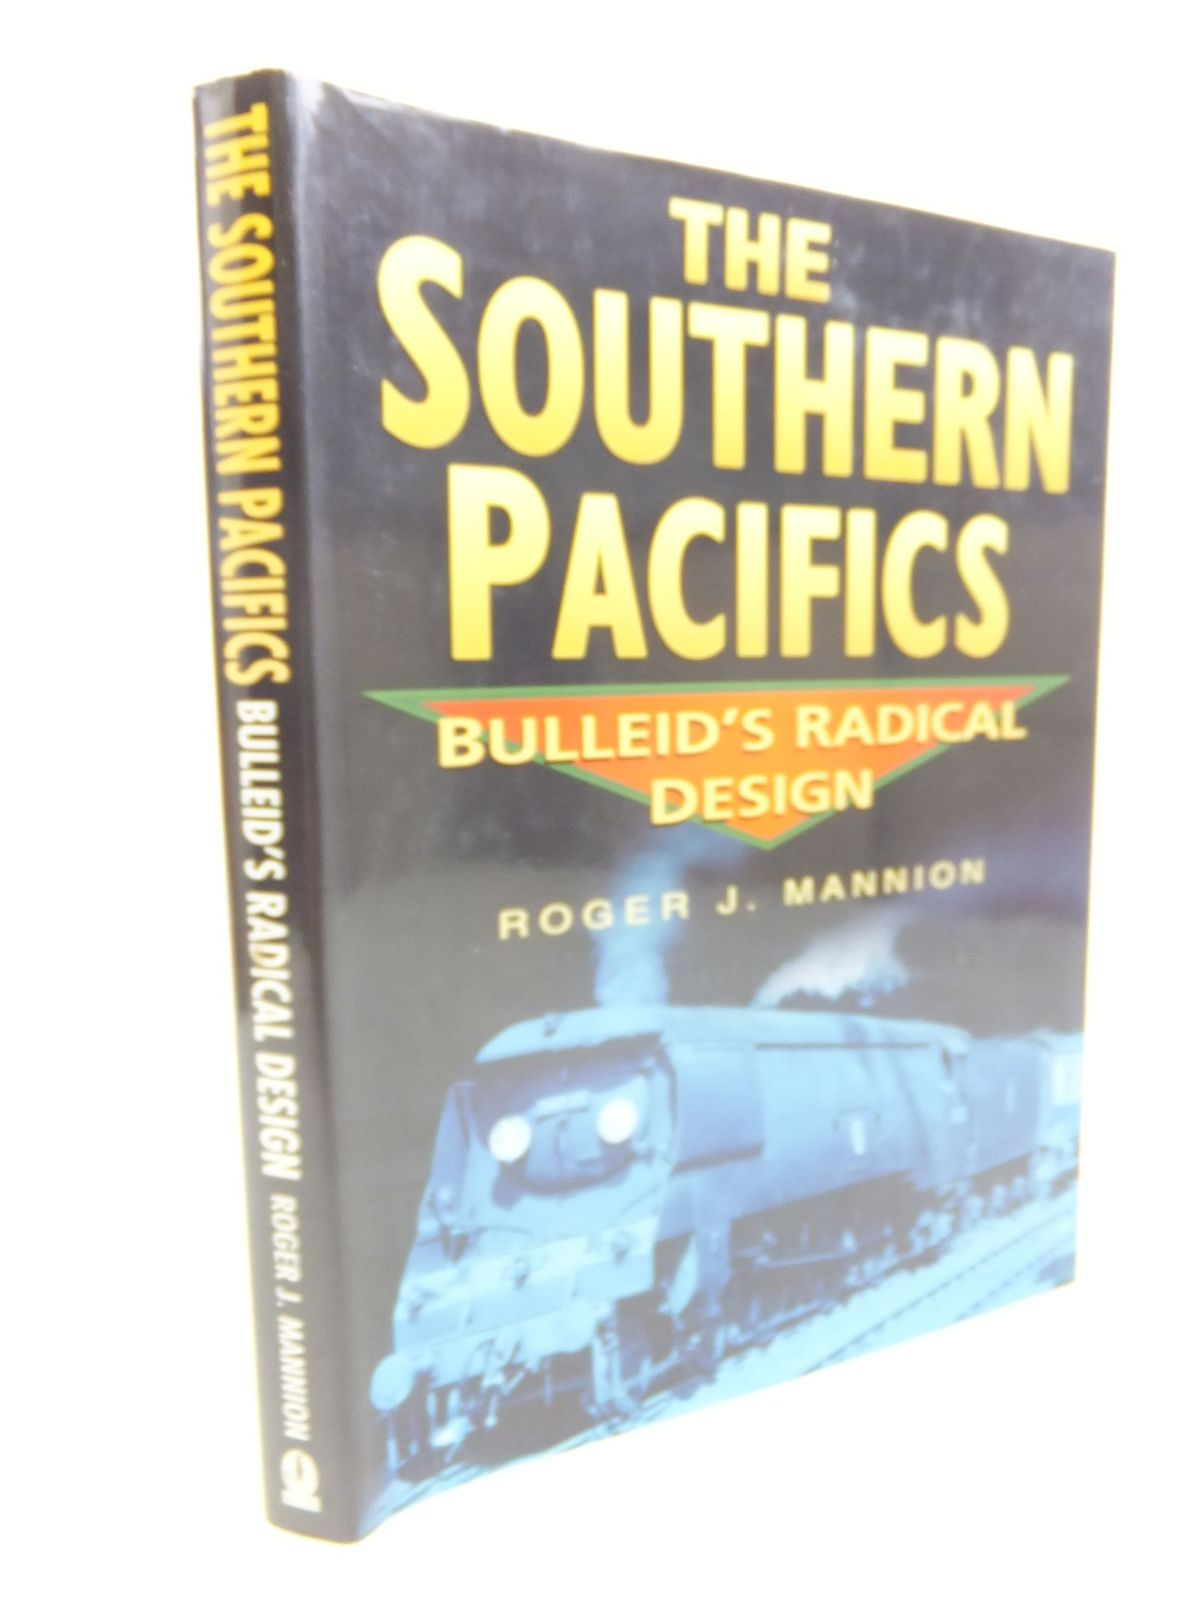 Photo of THE SOUTHERN PACIFICS BULLEID'S RADICAL DESIGN written by Mannion, Roger J. published by Sutton Publishing (STOCK CODE: 2116352)  for sale by Stella & Rose's Books